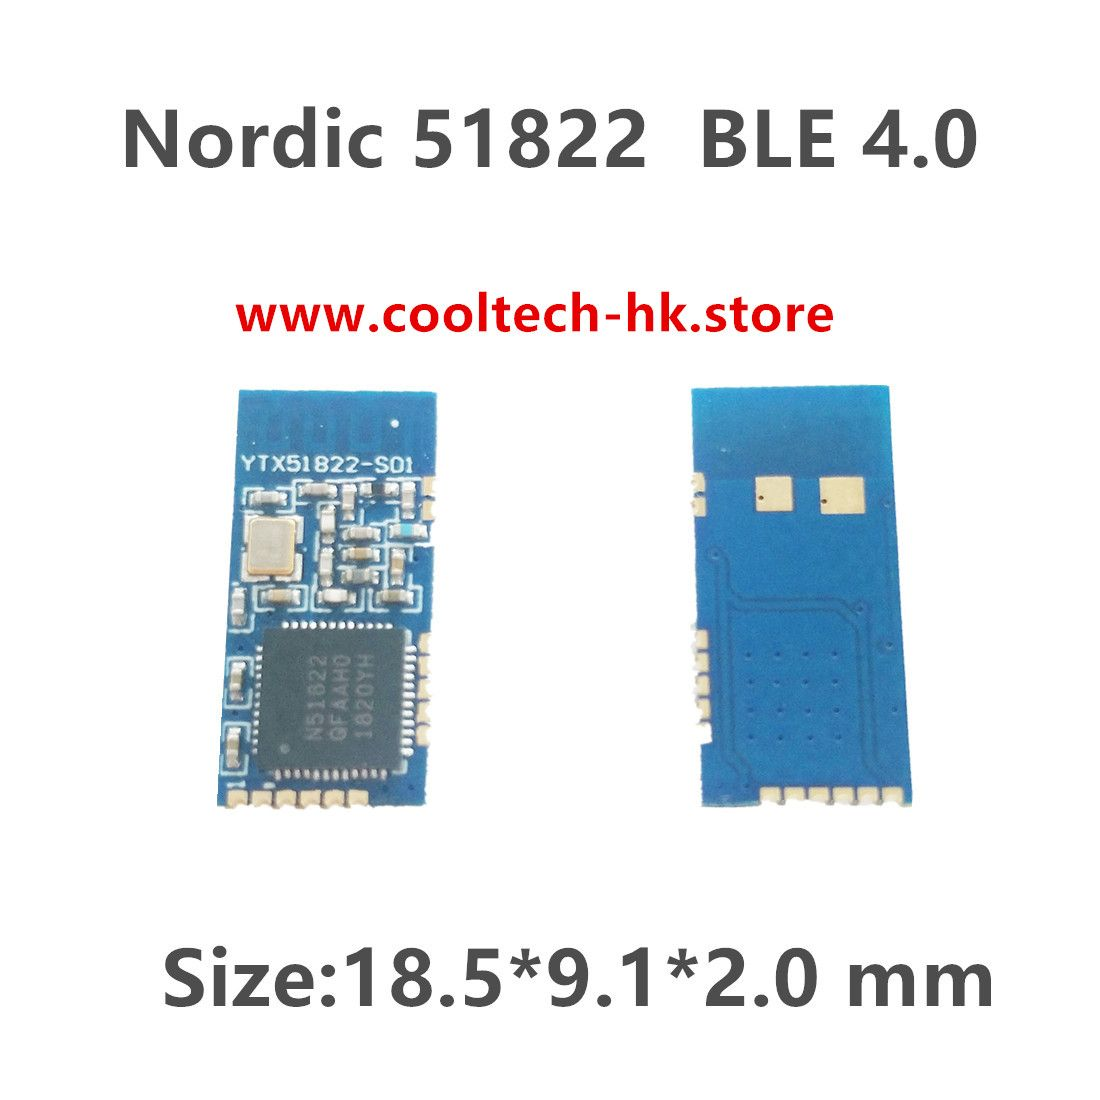 YTX51822-S01 Nordic 51822 Low Cost Bluetooth Low Energy